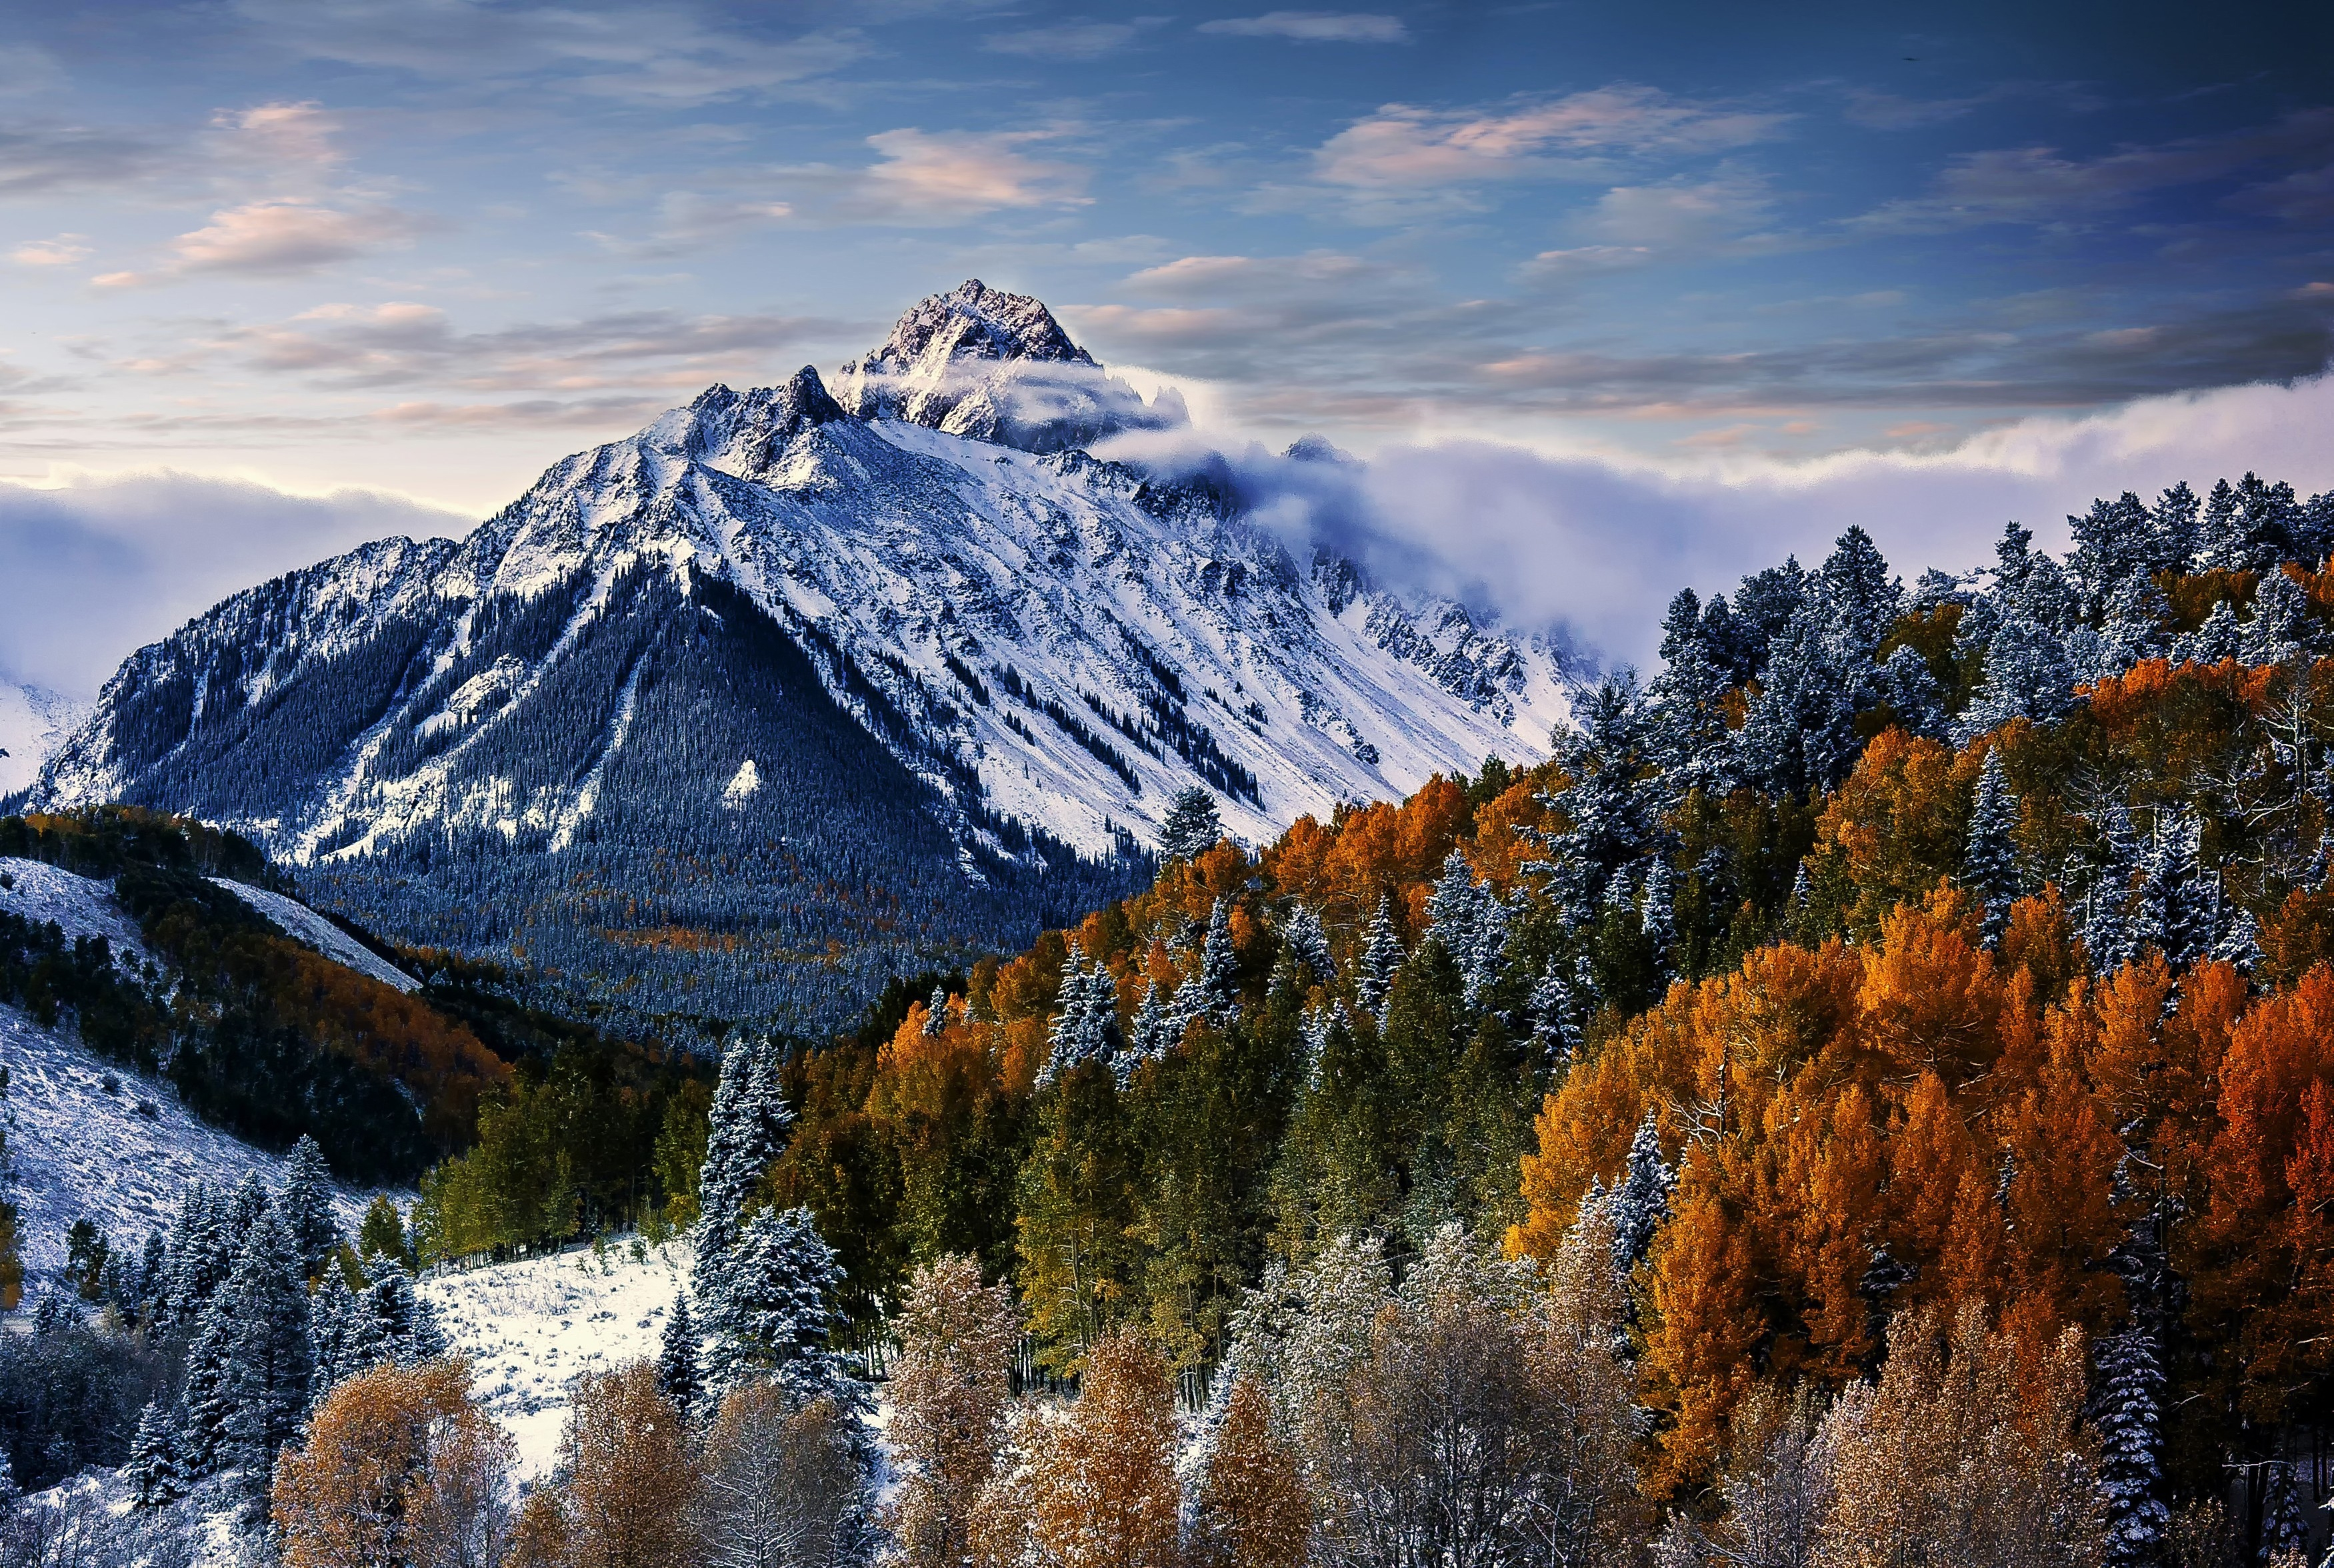 Snow mountain view hd wallpaper - Hd snow mountain wallpaper ...